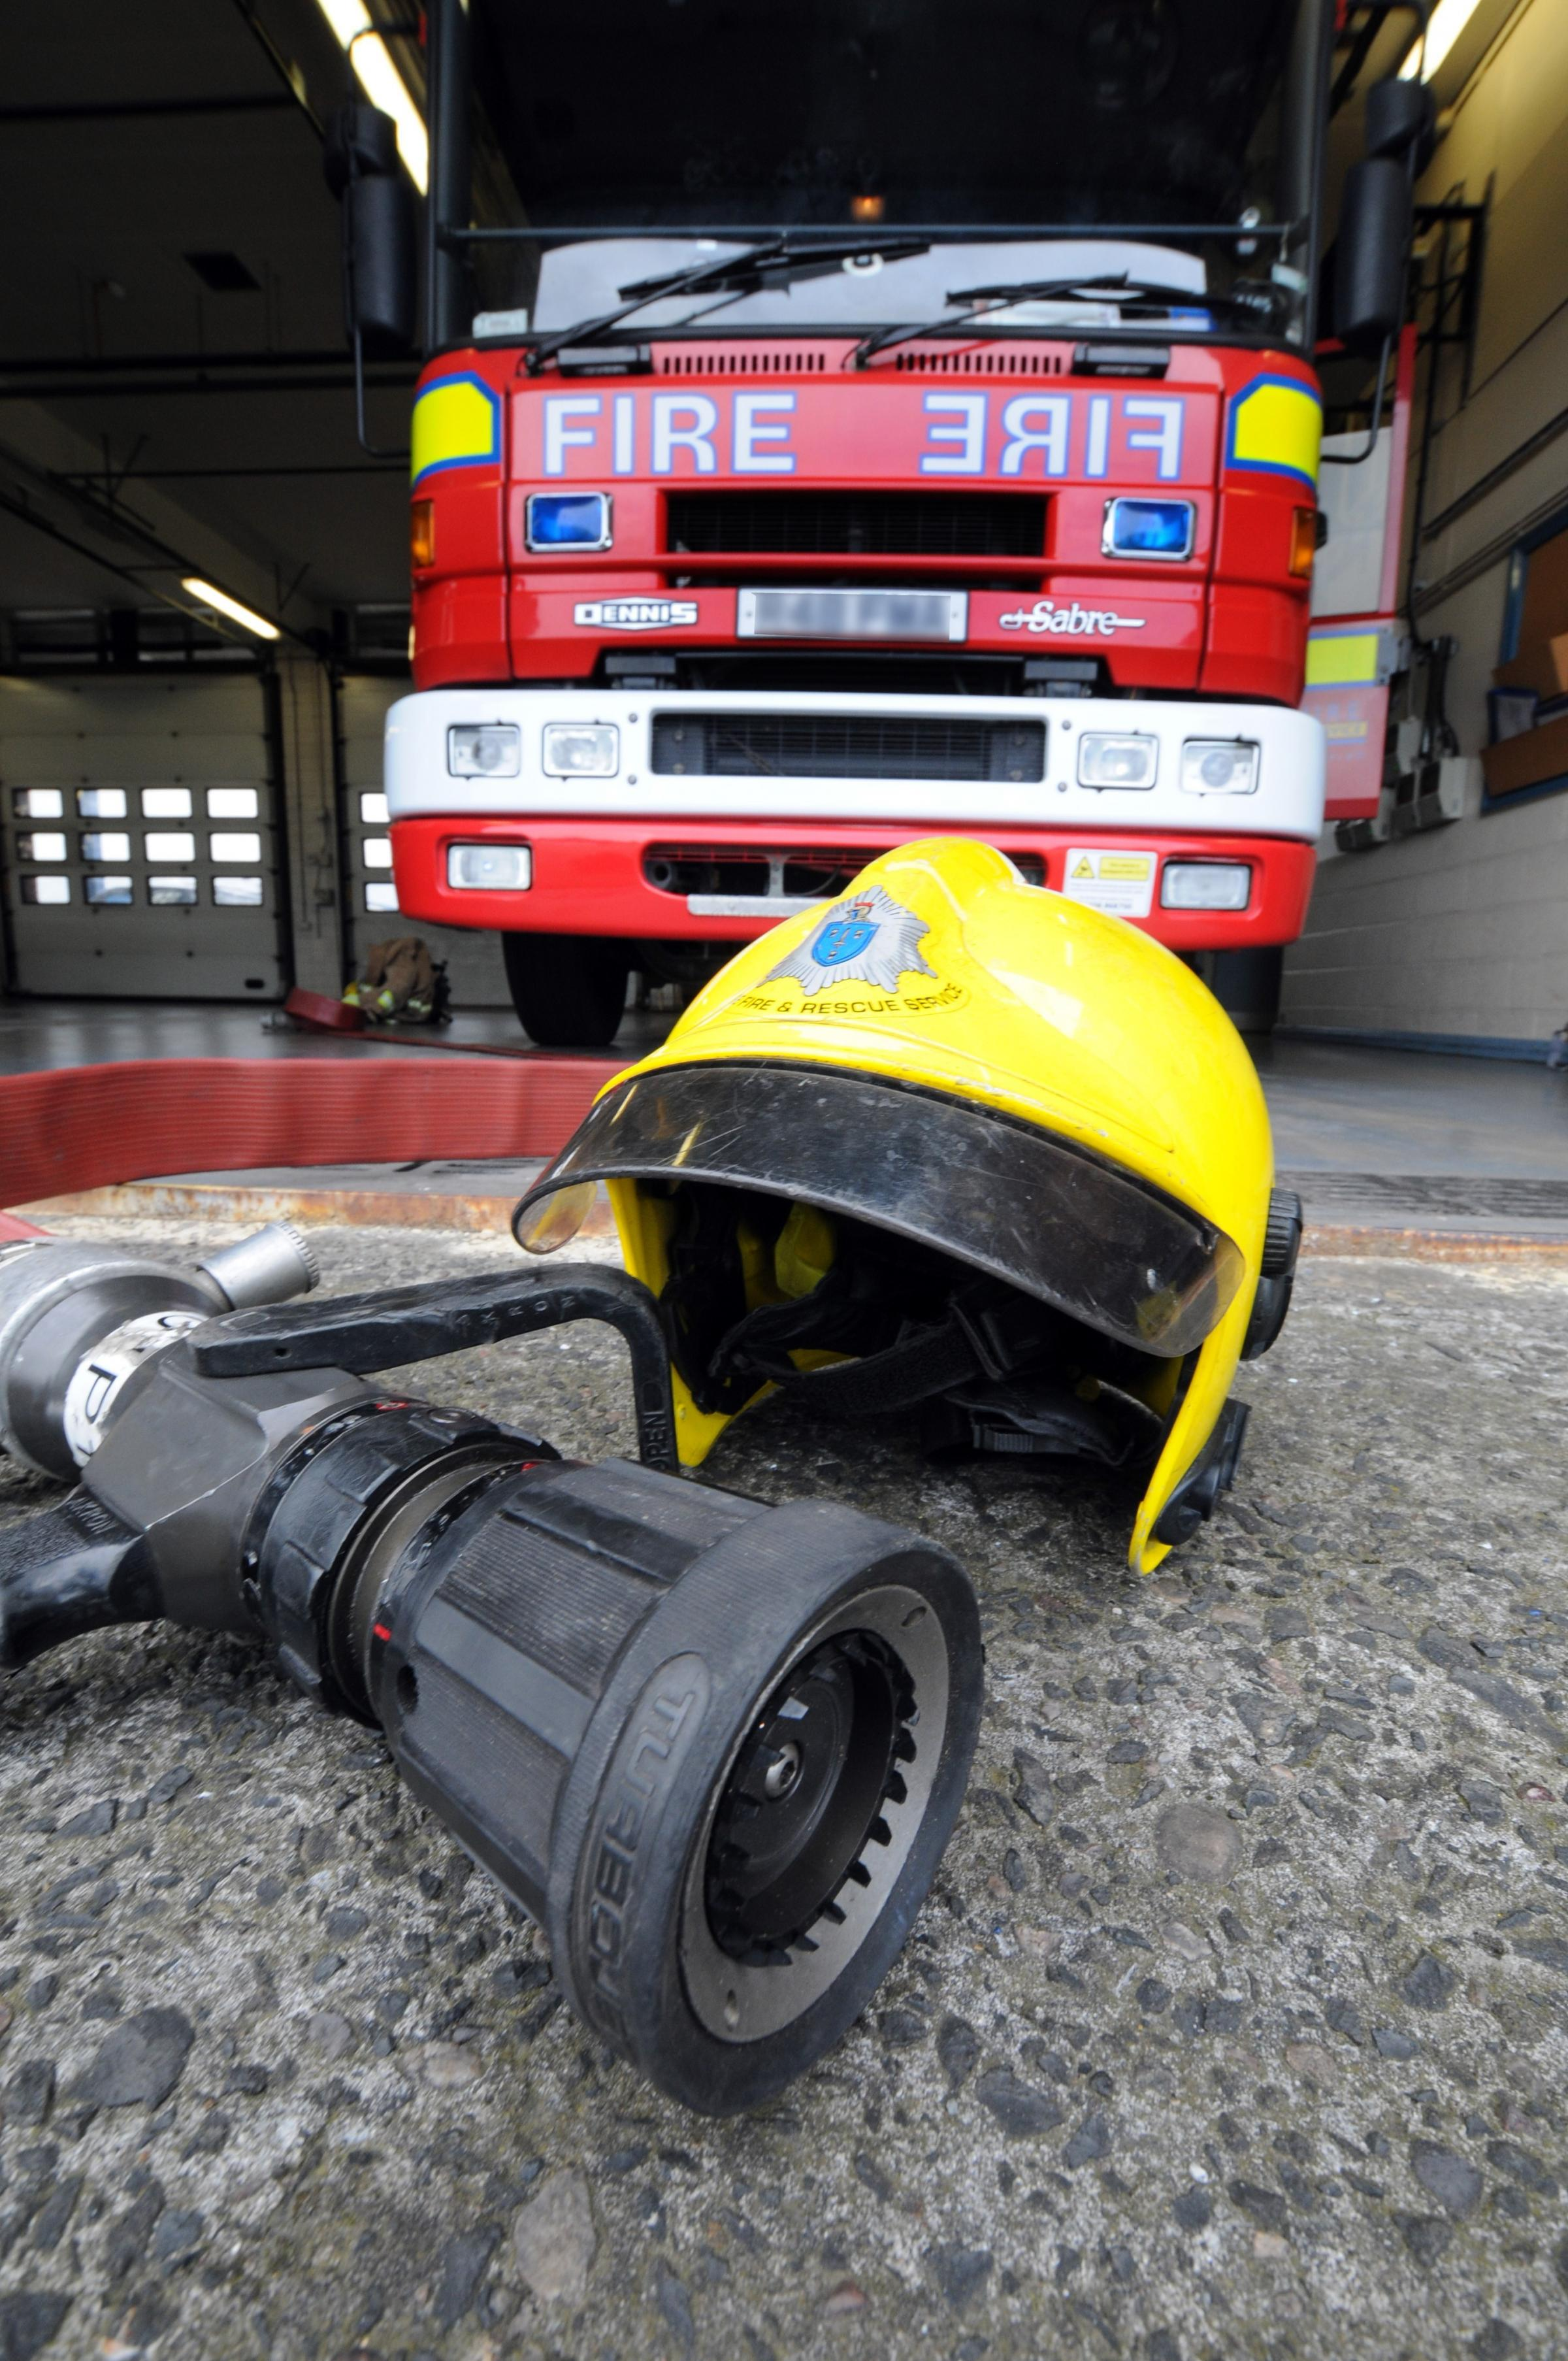 Firefighters were called to a house fire on Booth Lane in Middlewich